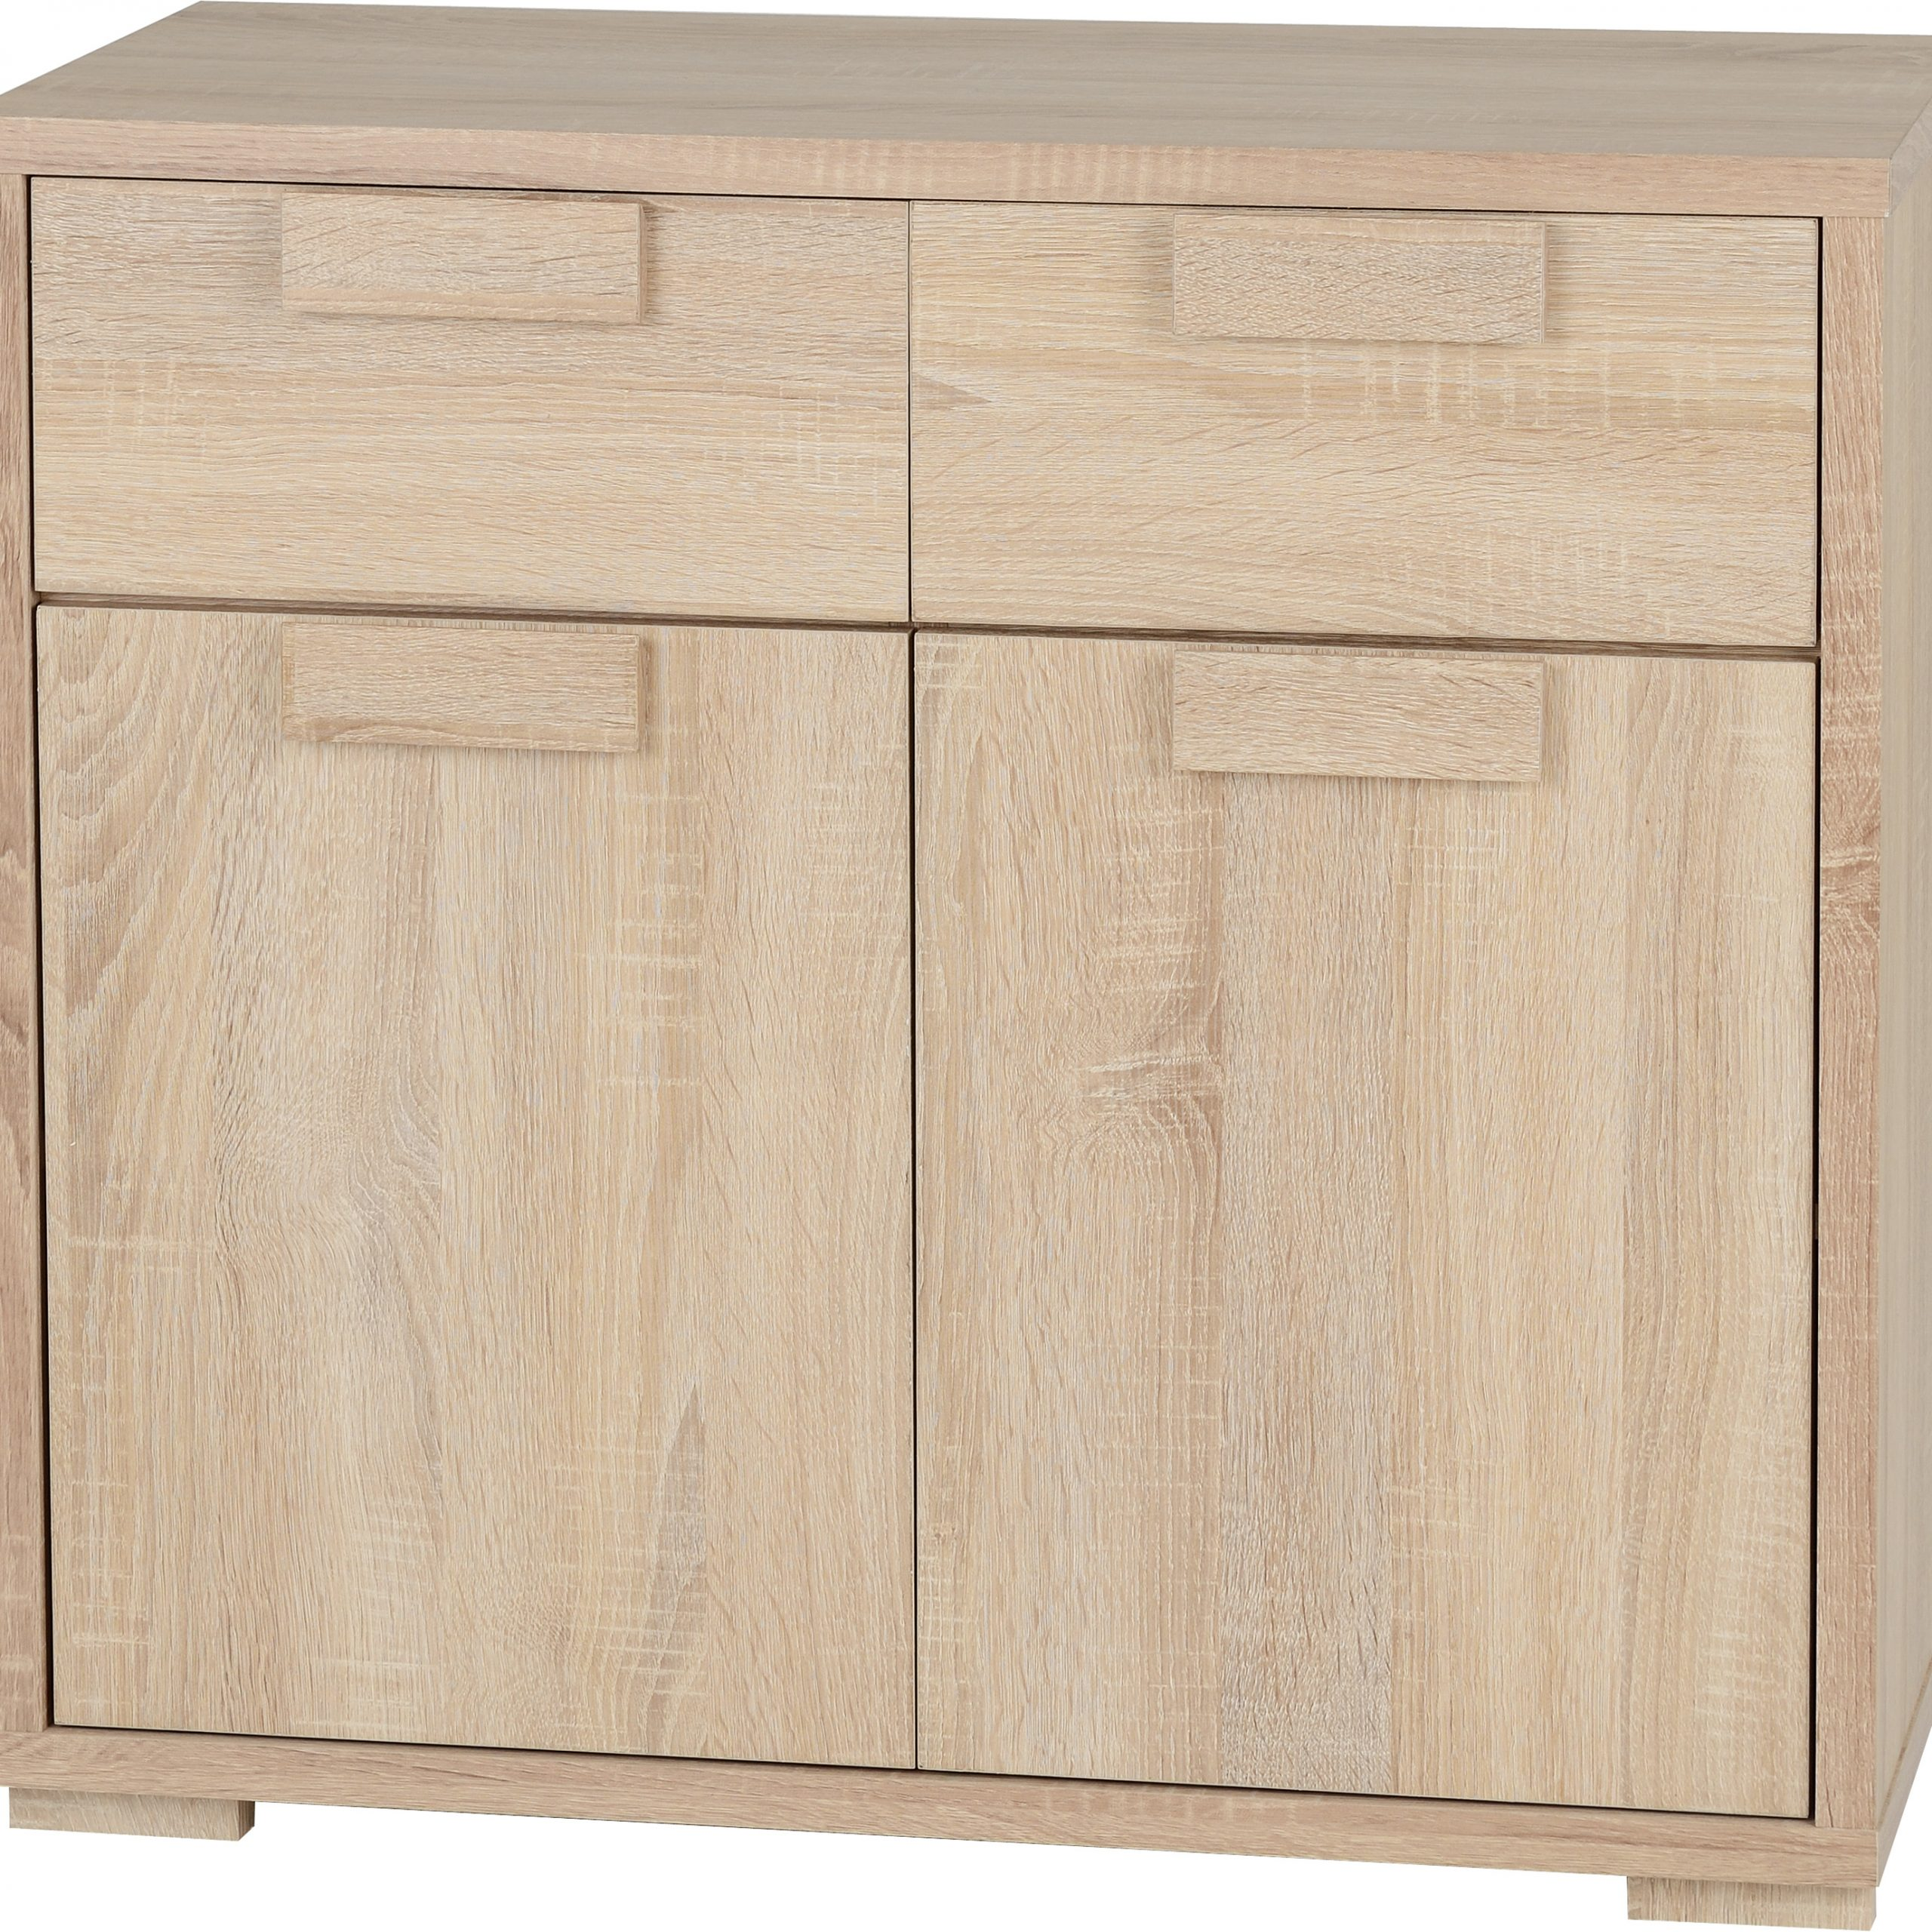 Most Recently Released Cambourne 2 Door 2 Drawer Sideboard In Sonoma Oak Effect With Regard To Cambourne Tv Stands (View 6 of 10)